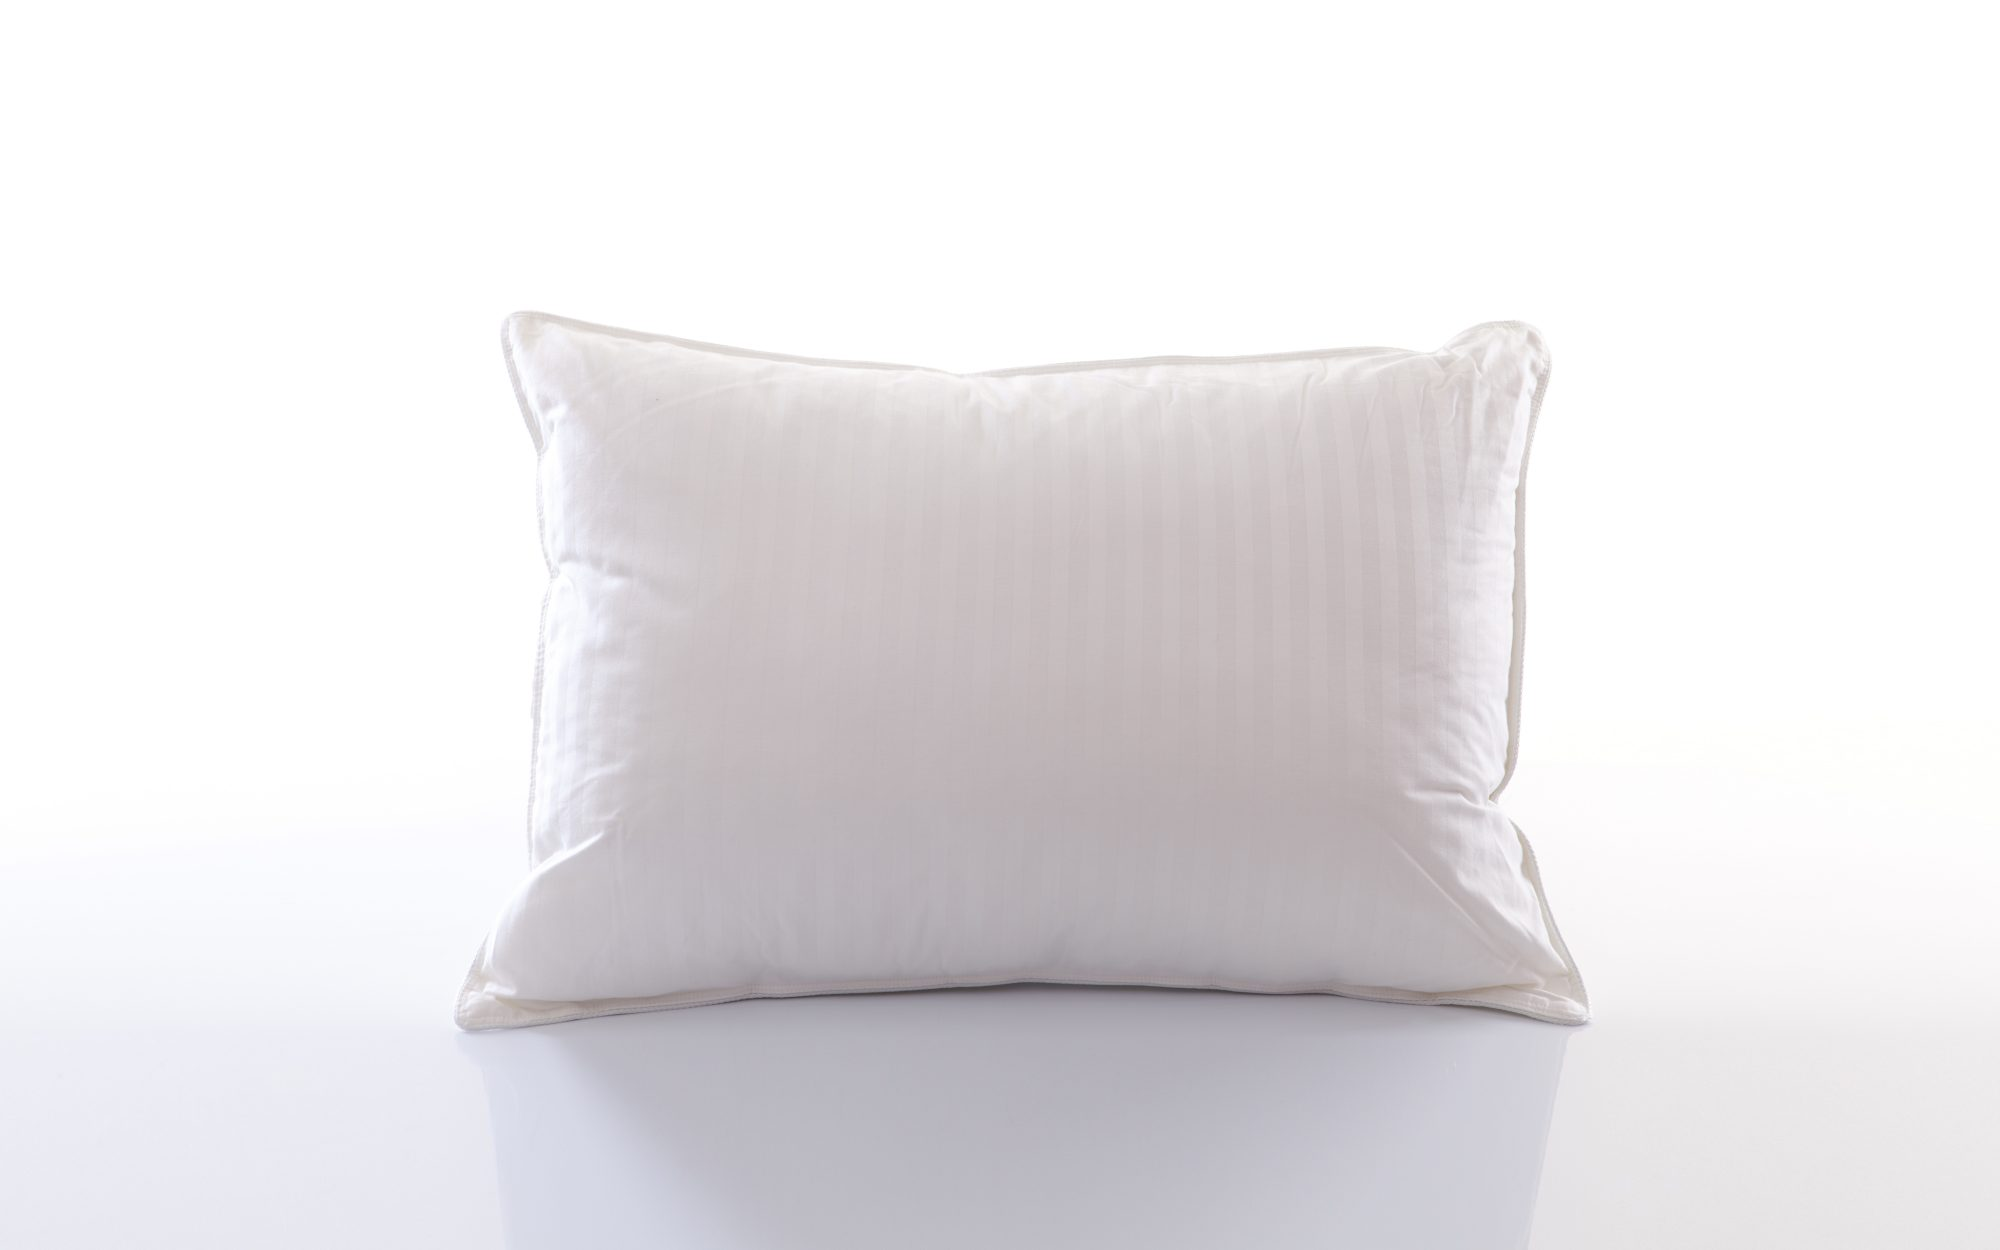 Do use a pillow cover